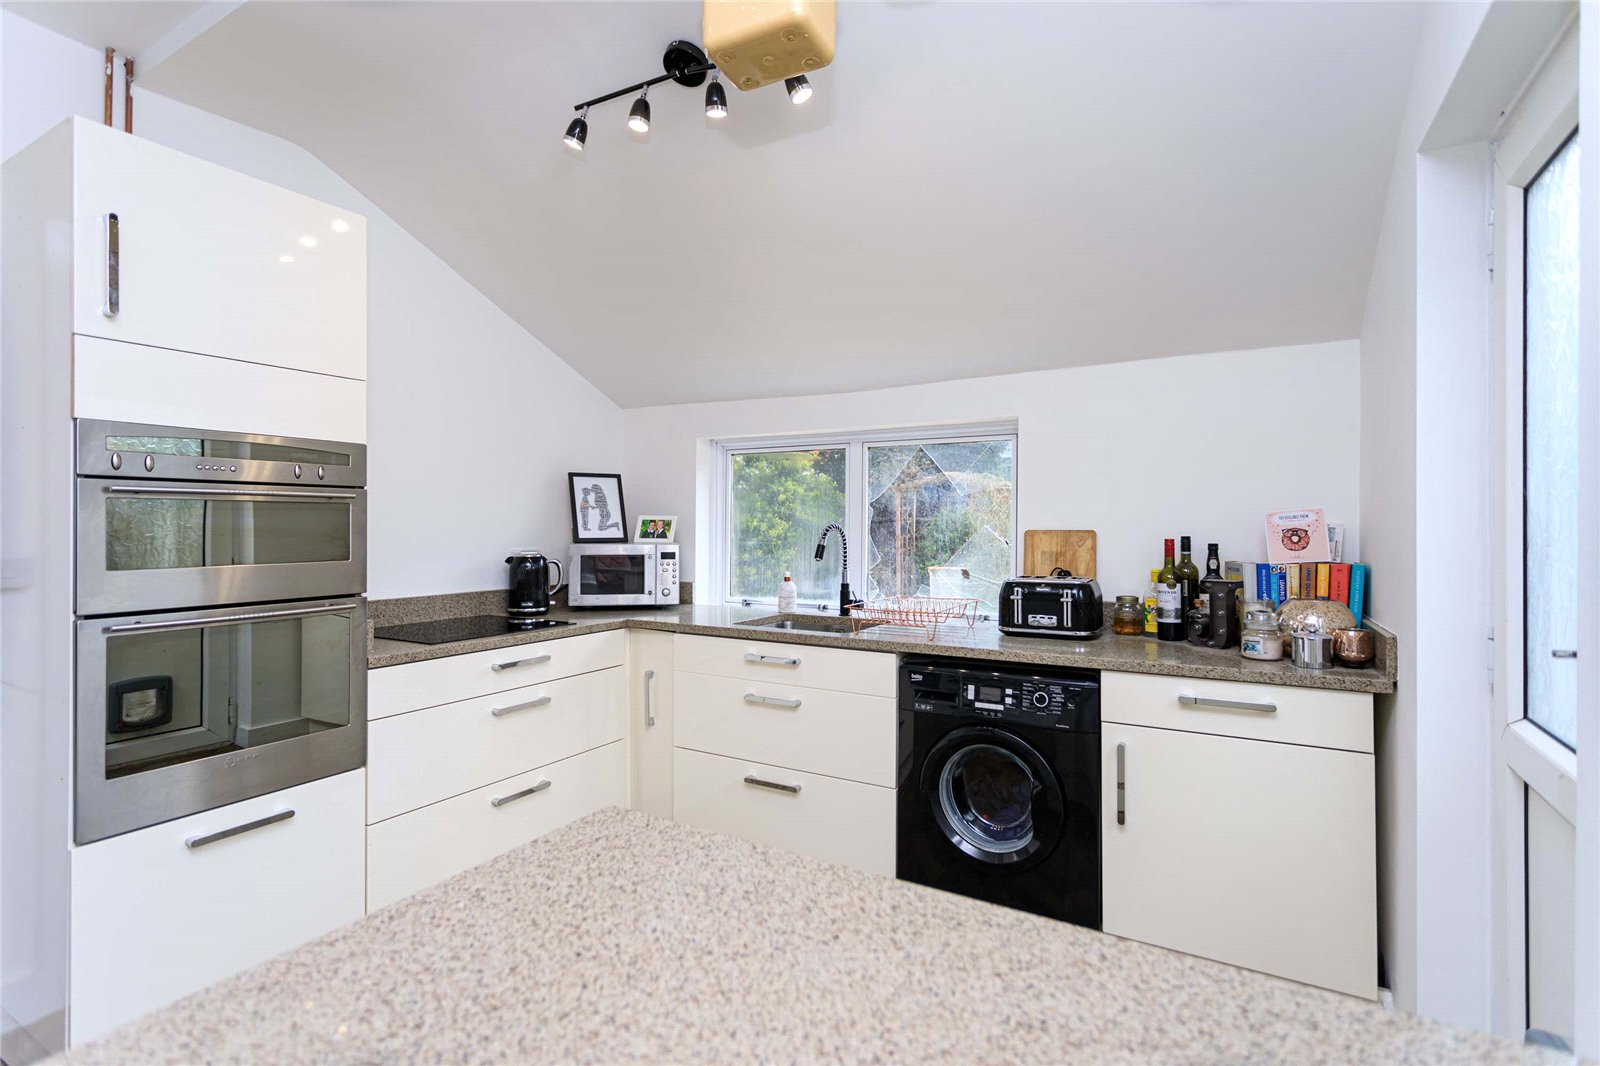 3 bed bungalow for sale in Ensbury Park, BH10